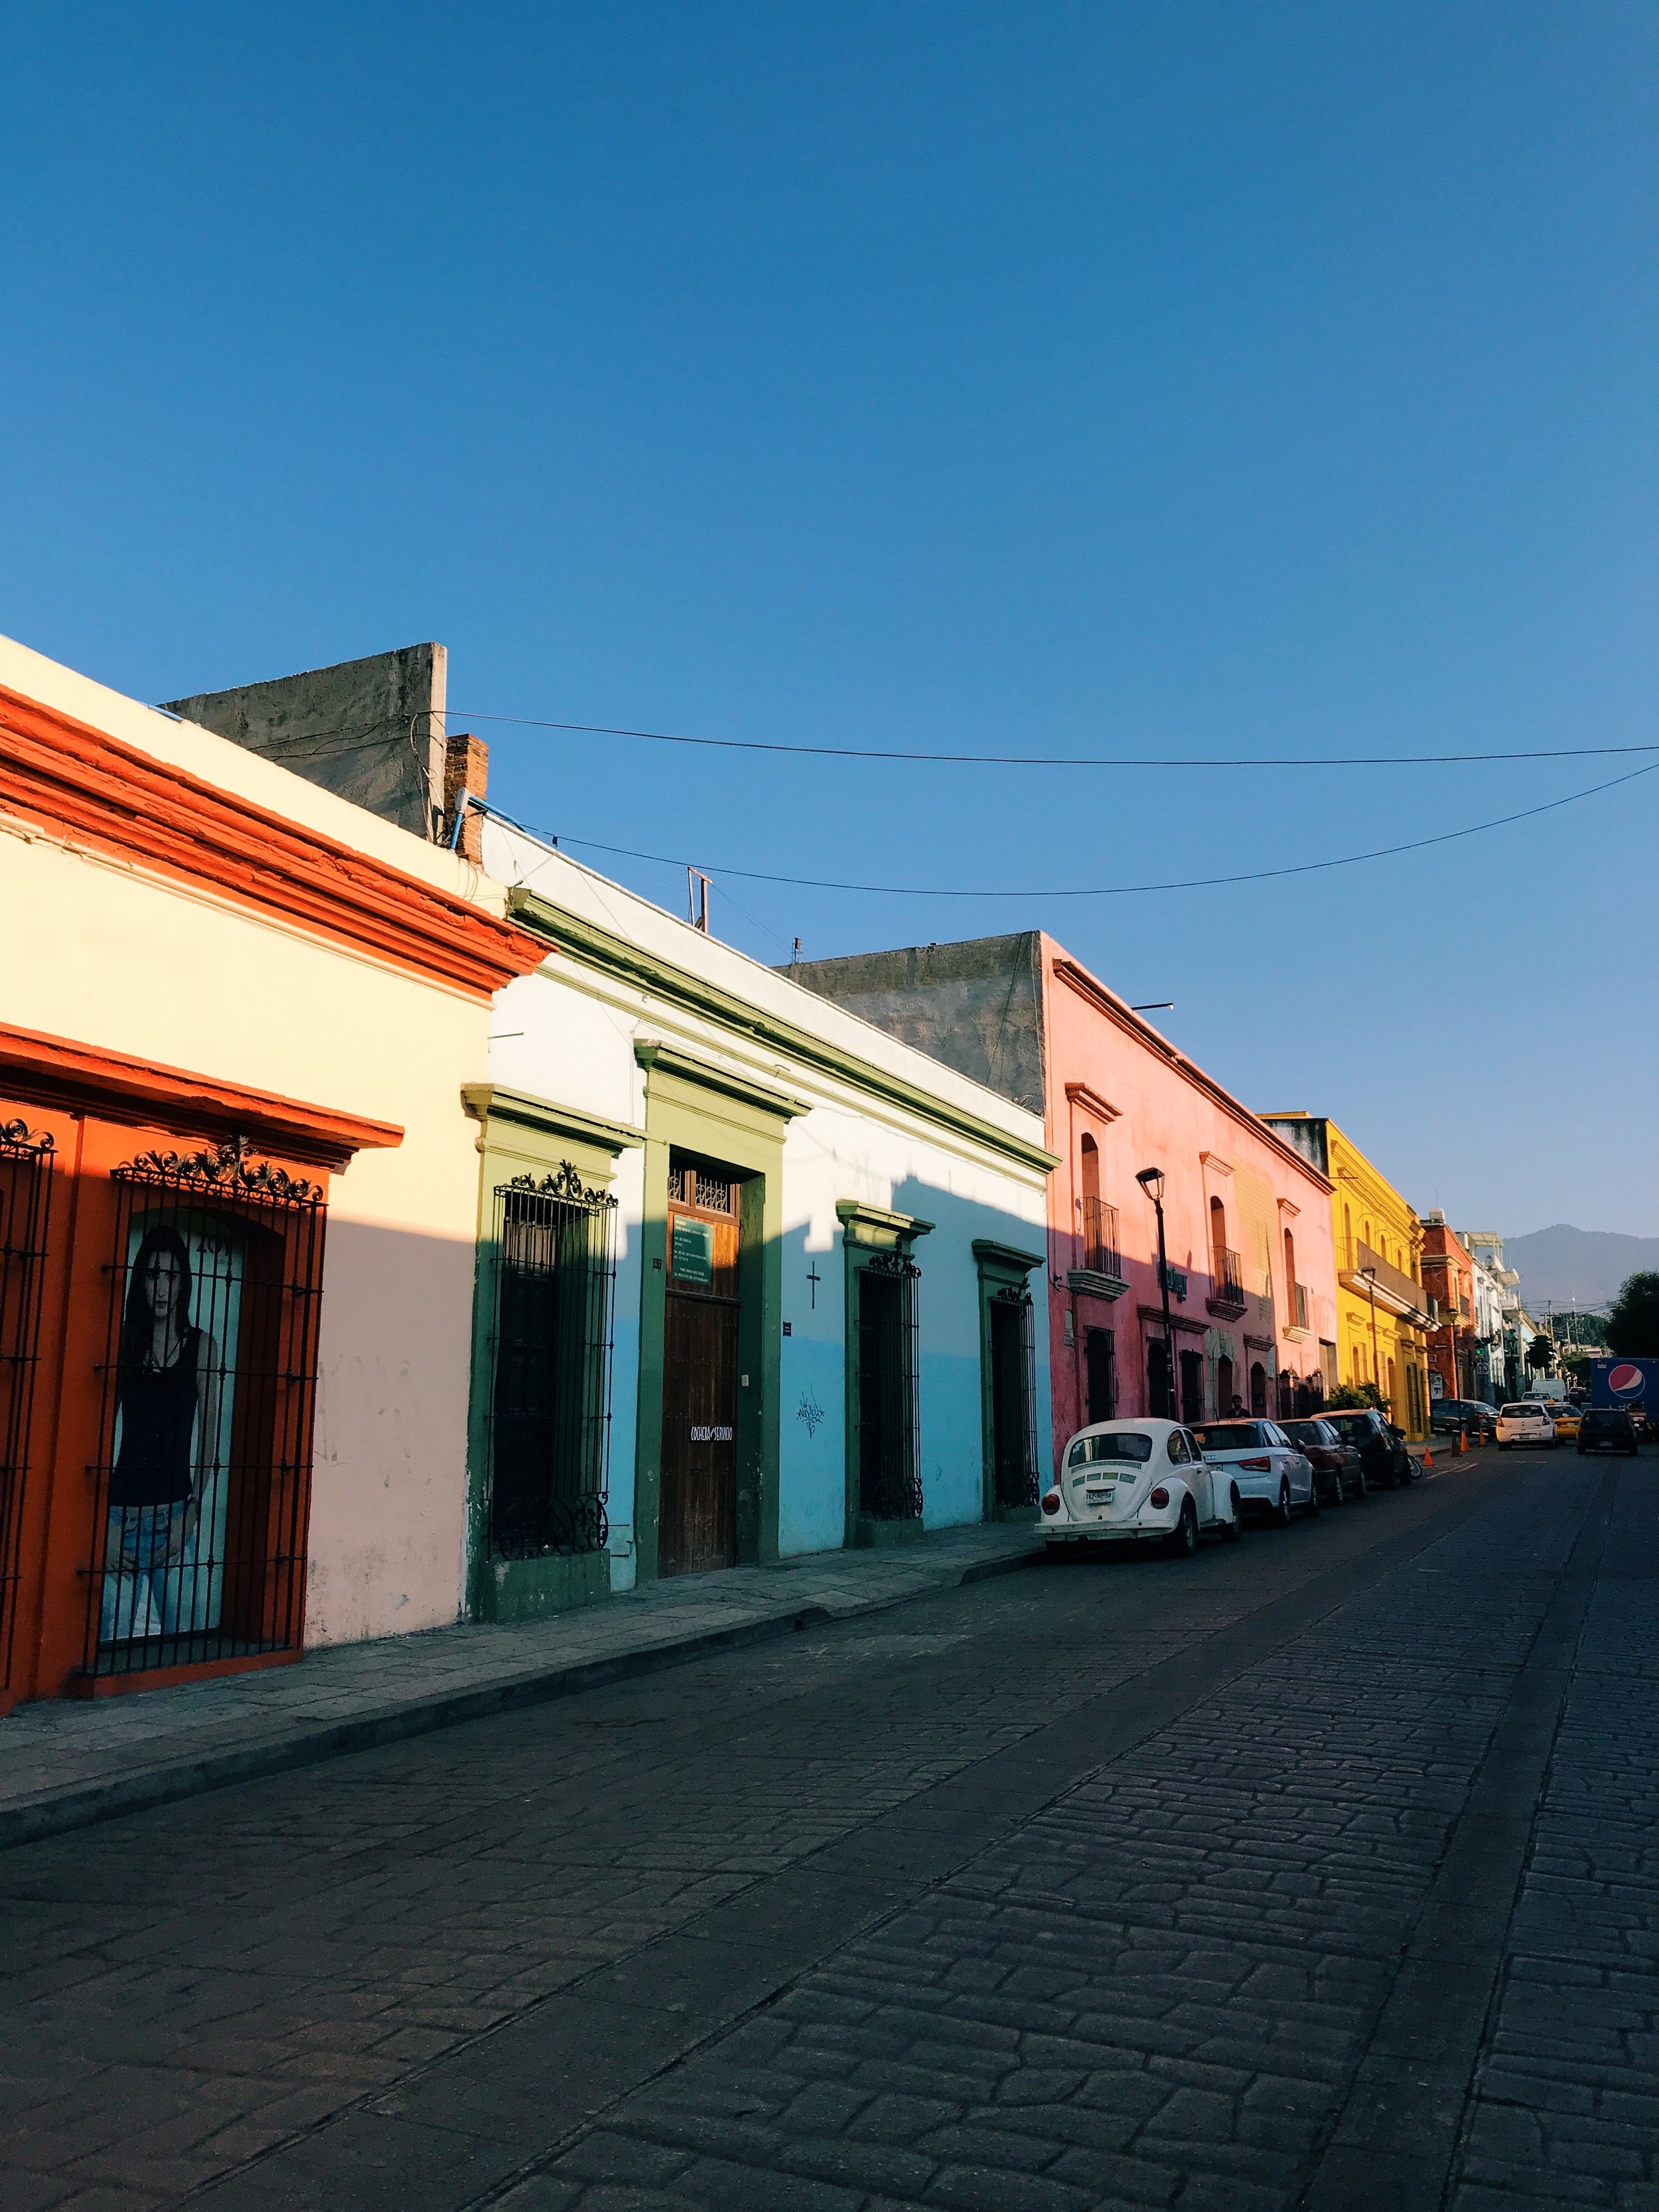 If you love Mexican food and affordable living, you can't do better than Oaxaca, Mexico.